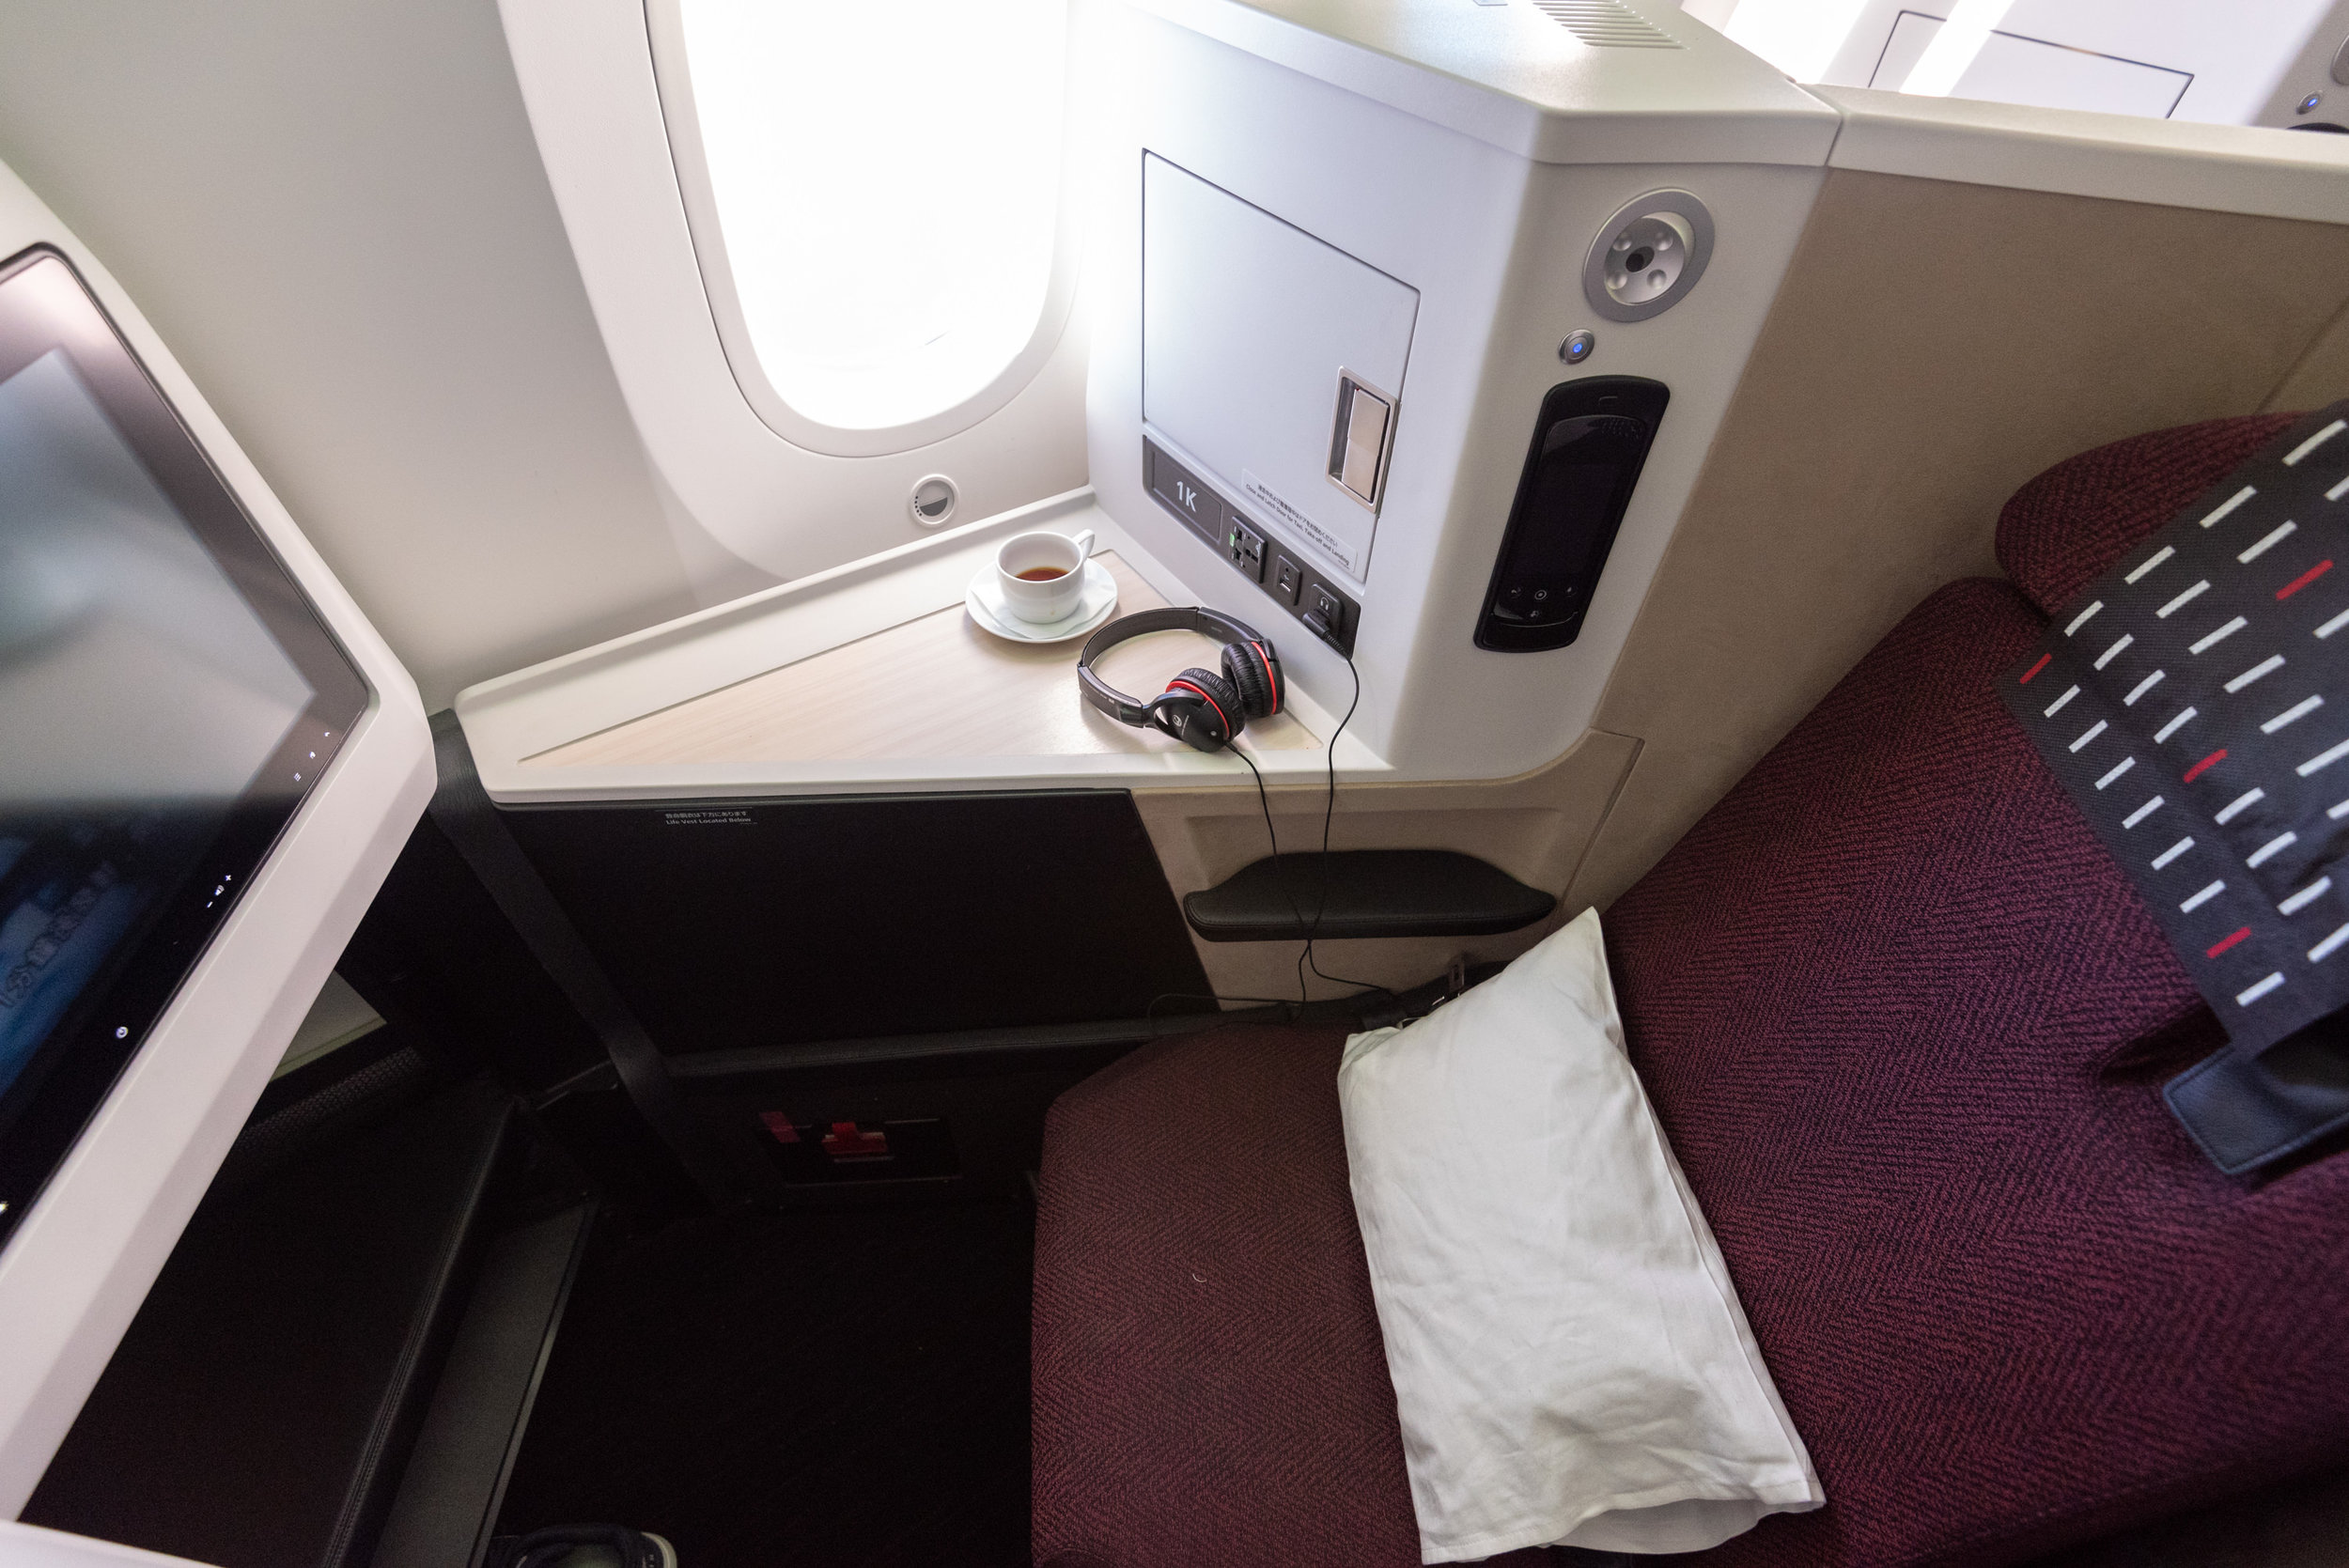 Trip Report - Japan Airlines Business Class Sky Suite Iii